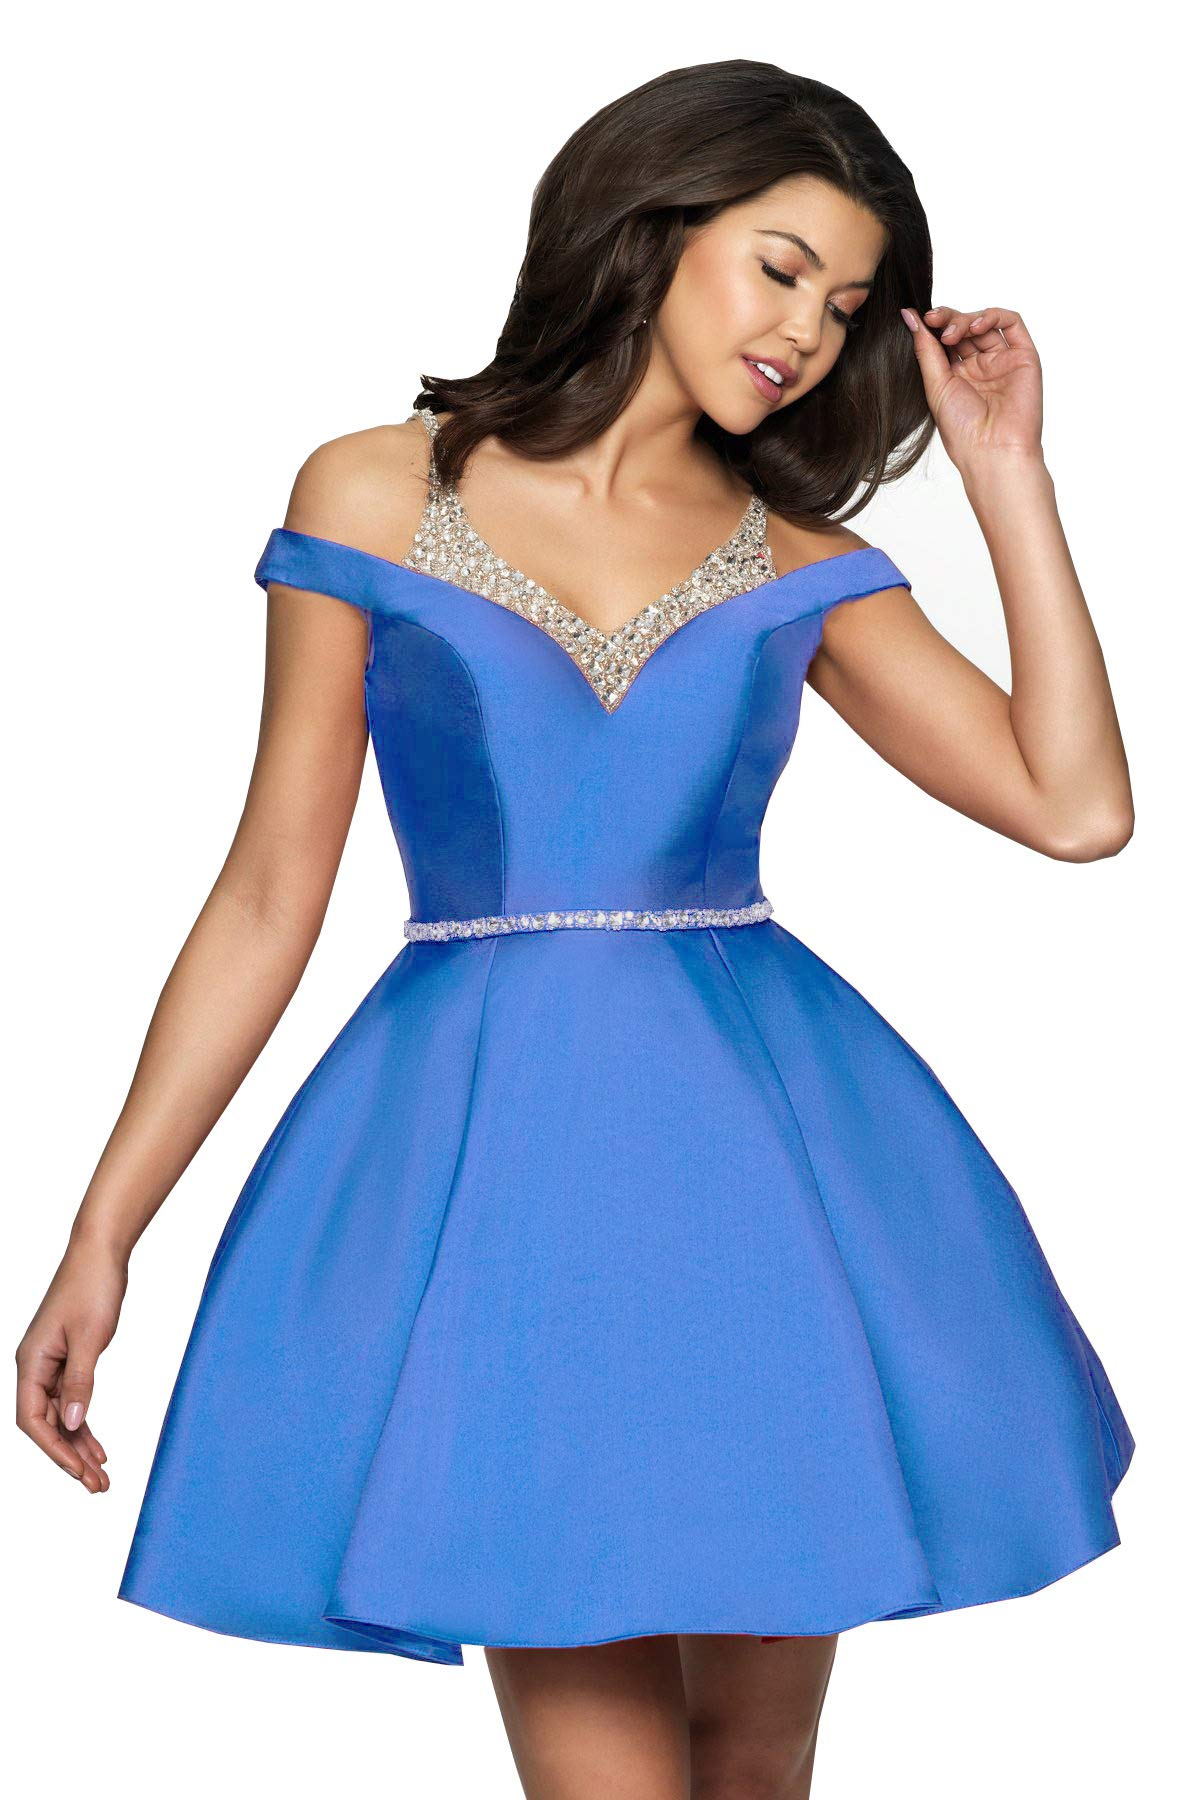 Available at Amazon: YGSY Women's Off The Shoulder A Line Beaded Homecoming Dress Short Formal Evening Gown